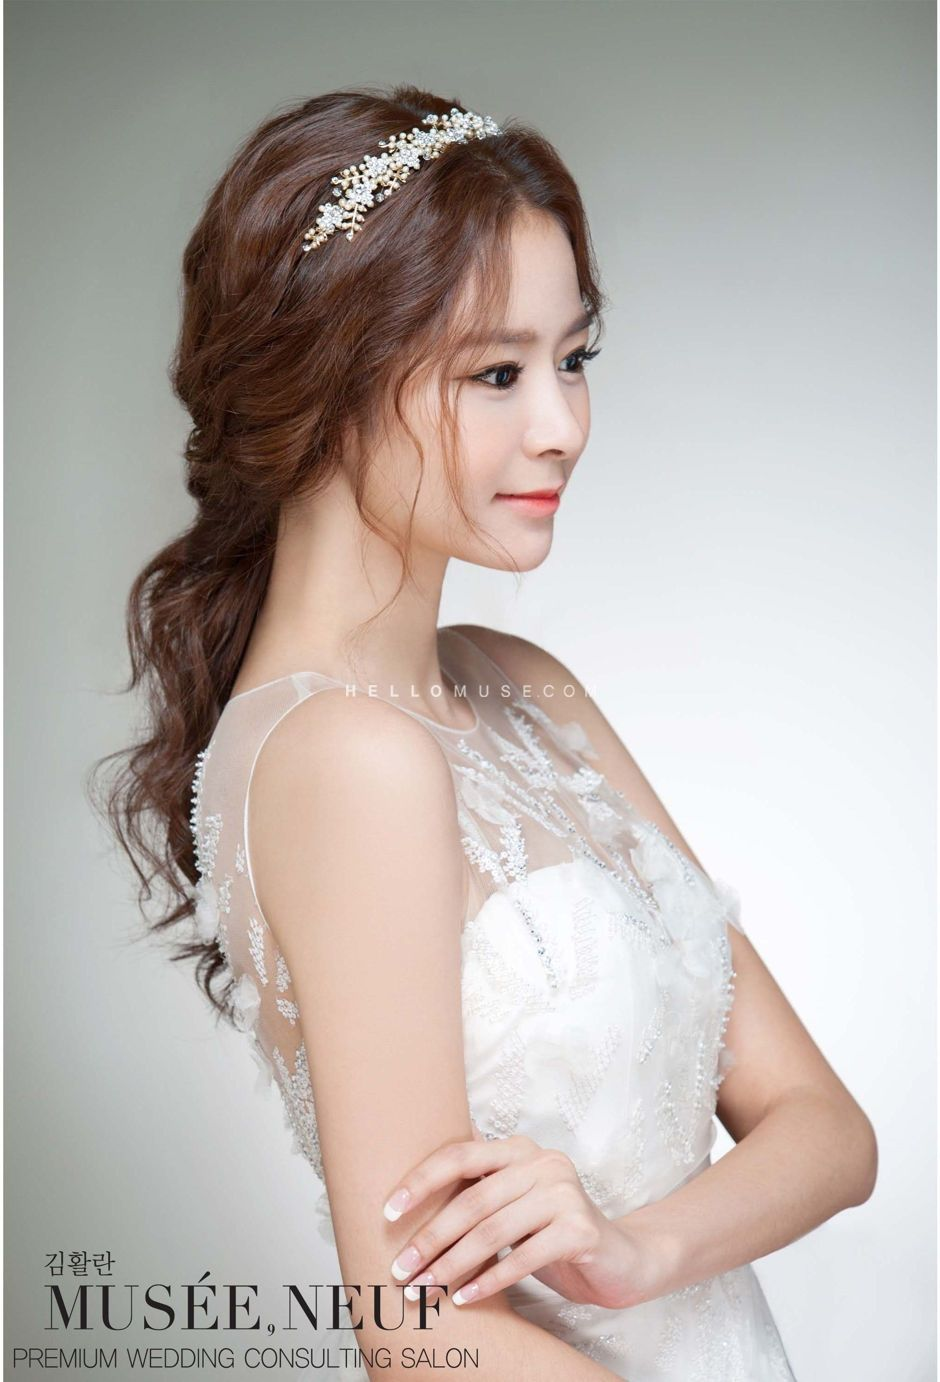 VickyC5MakeupArtTeam Weddinghair Bridalhair www vickyc5